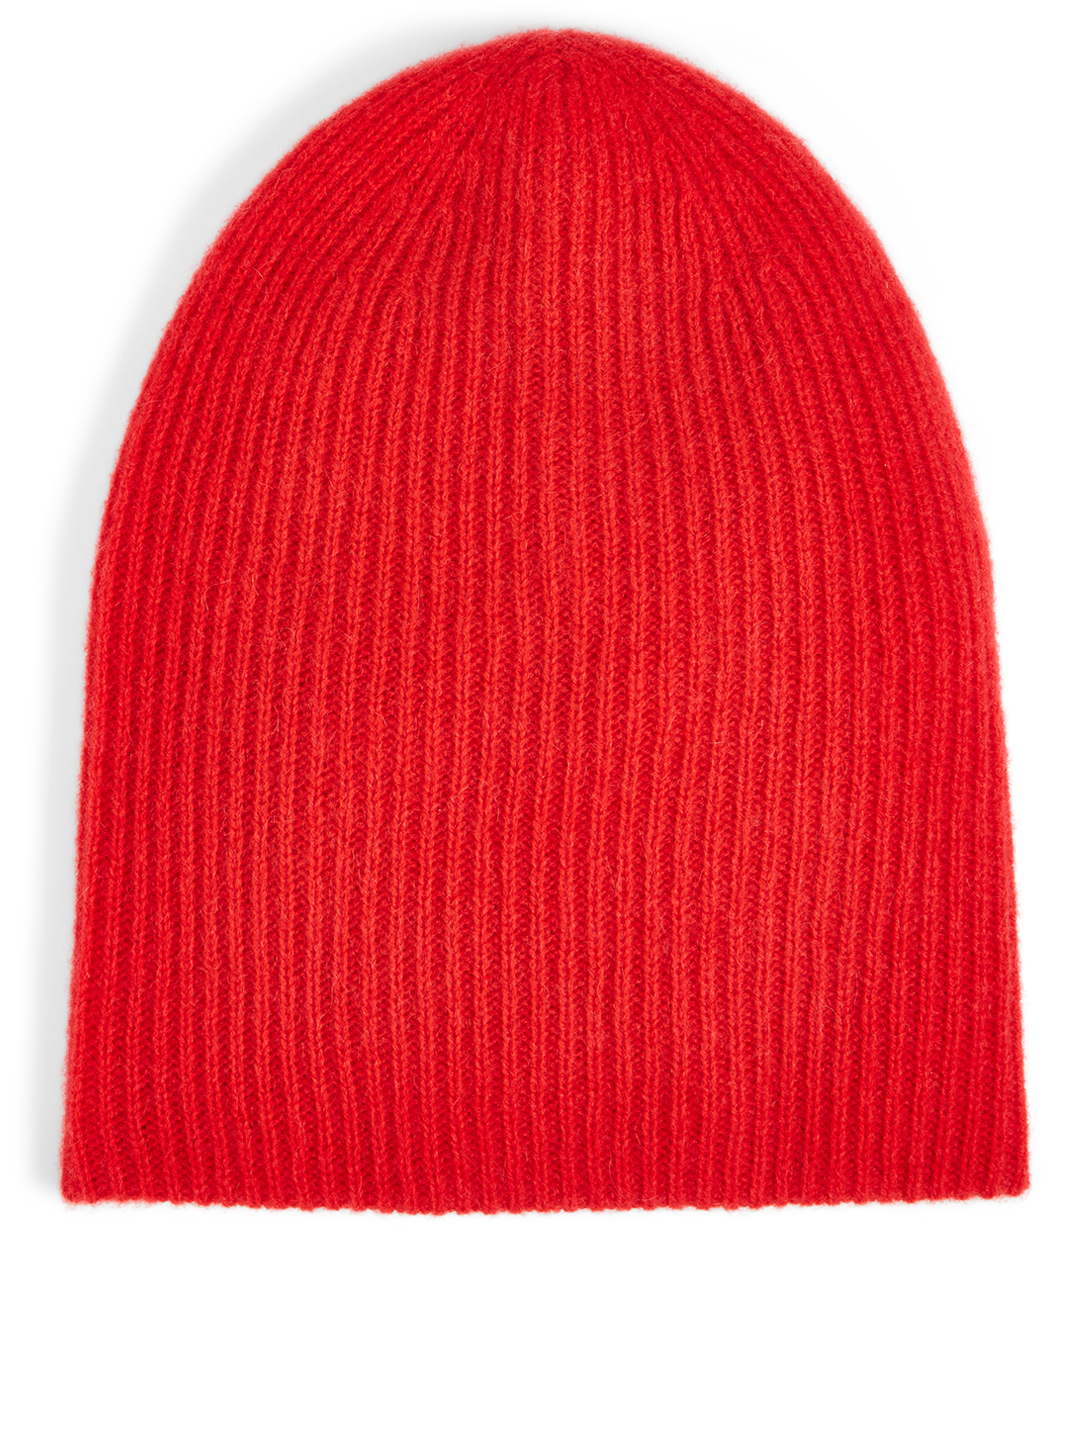 WHITE + WARREN Cashmere Toque Women's Red